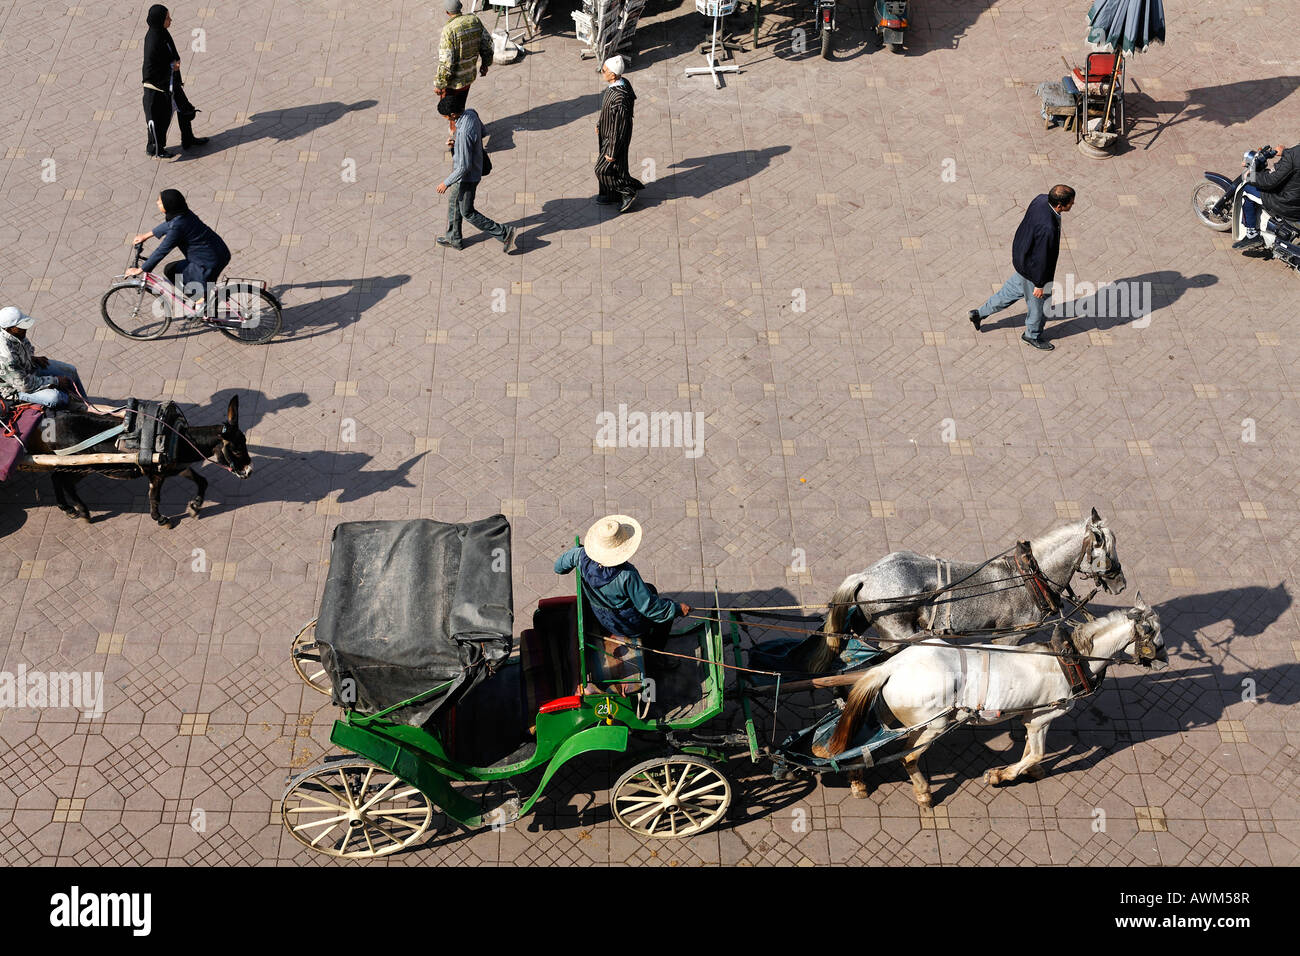 Horse-drawn carriage and pedestrians at Djemaa el-Fna, Marrakech, Morocco, Africa Stock Photo